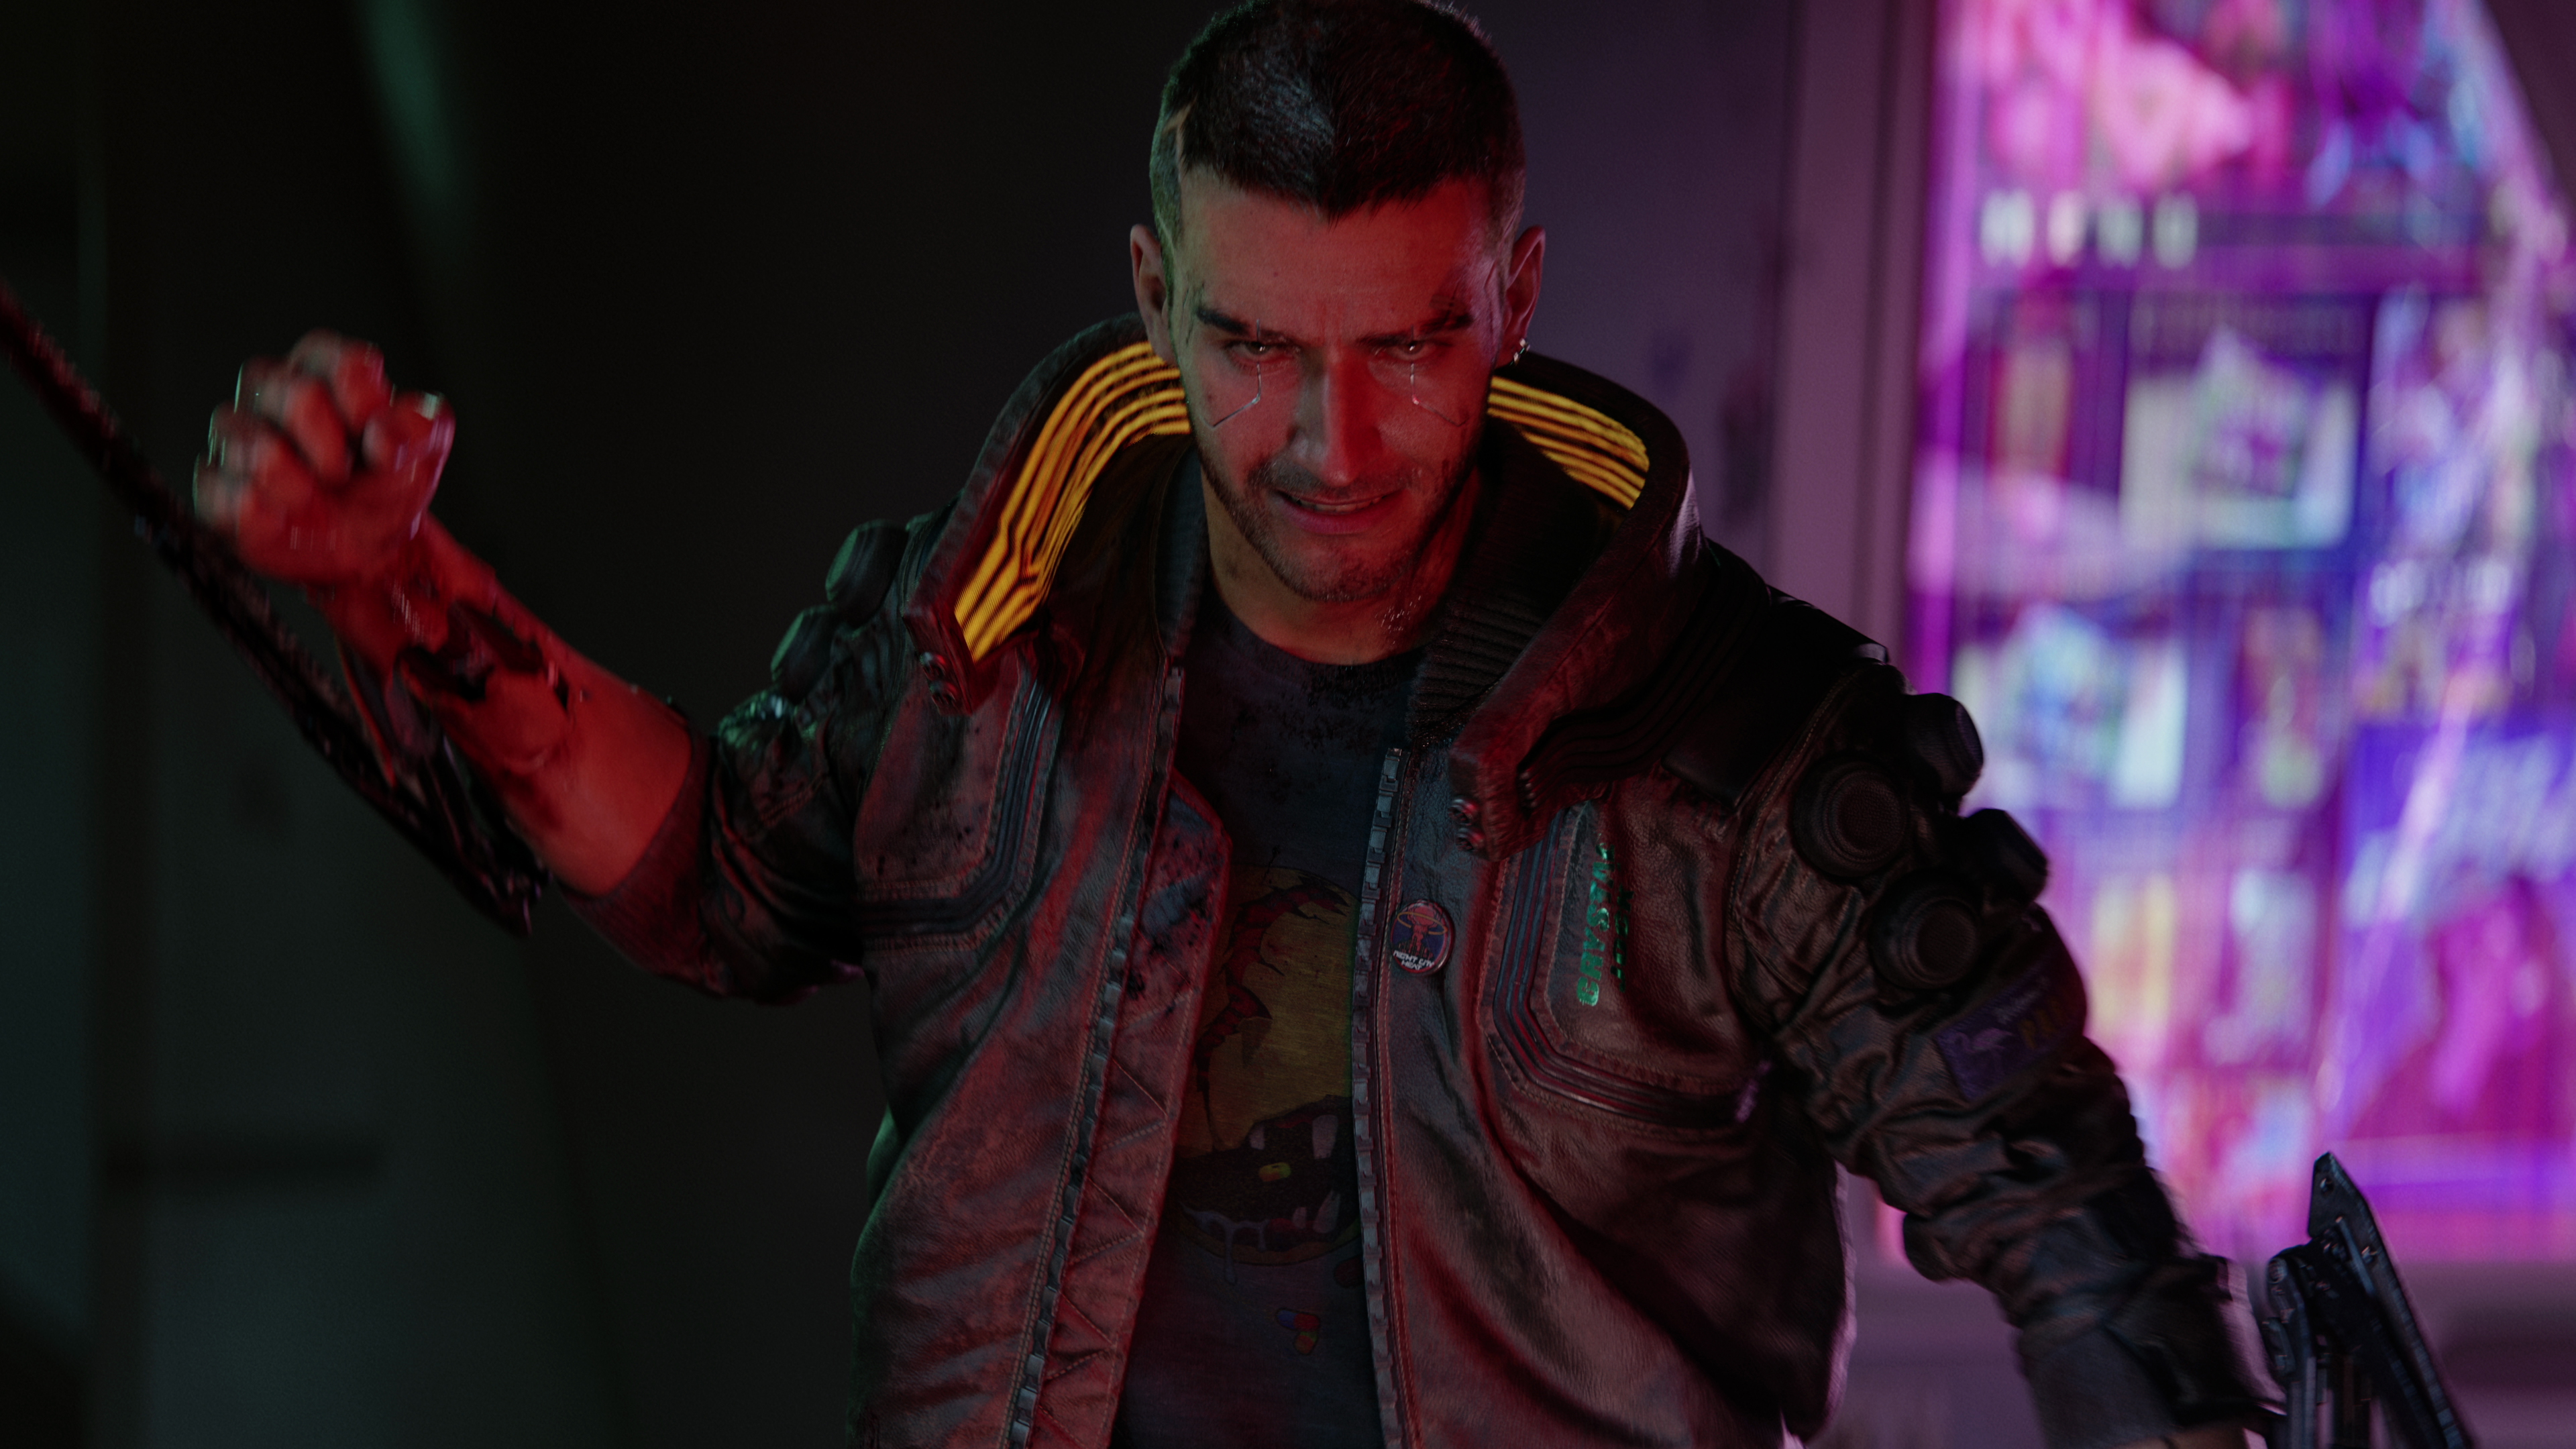 The Cyberpunk 2077 E3 2019 gameplay demo will be made public at PAX West | PC Gamer